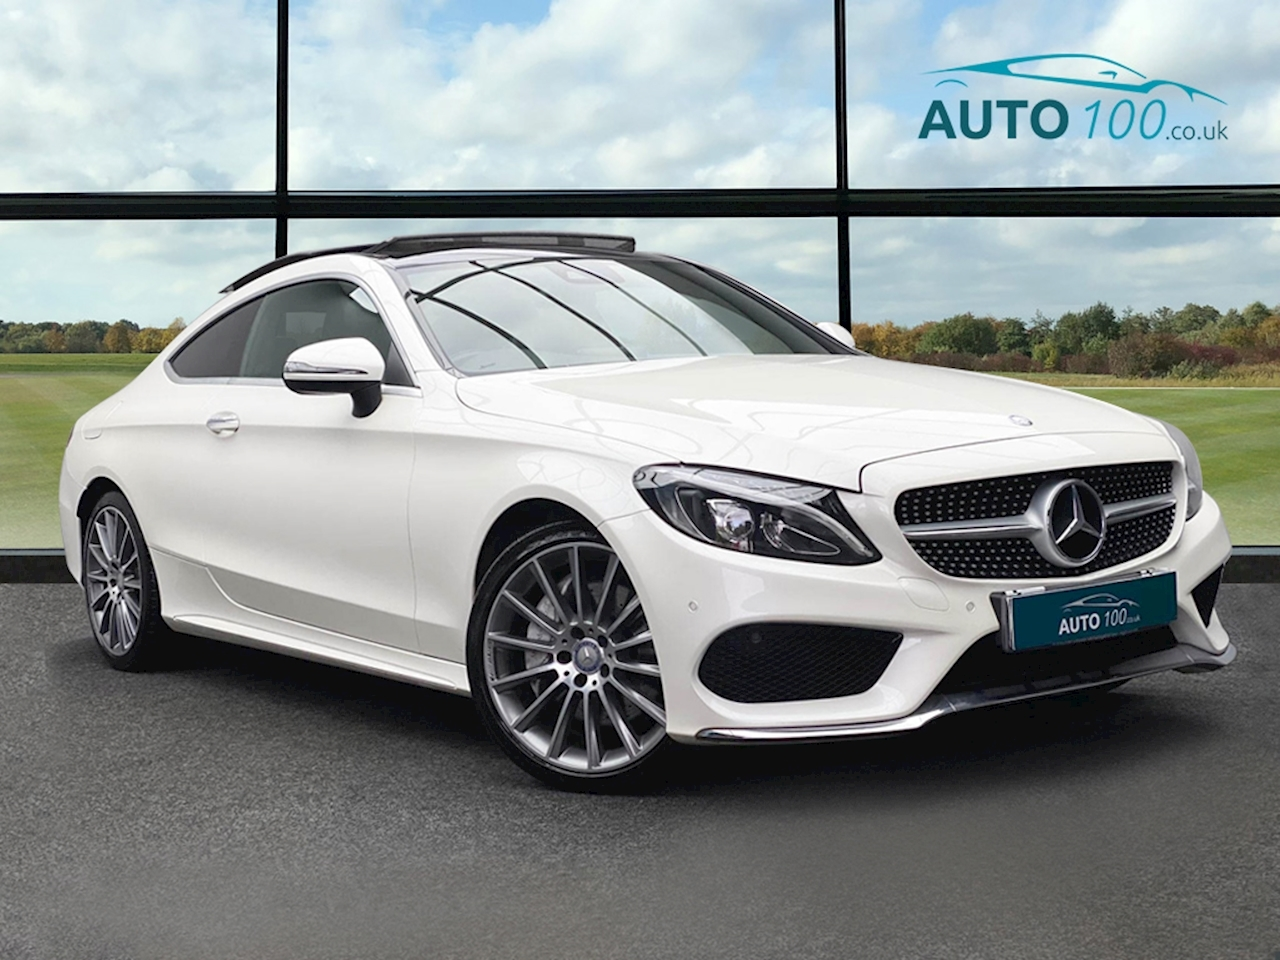 Mercedes-Benz C Class AMG Line Coupe 2.1 G-Tronic+ Diesel